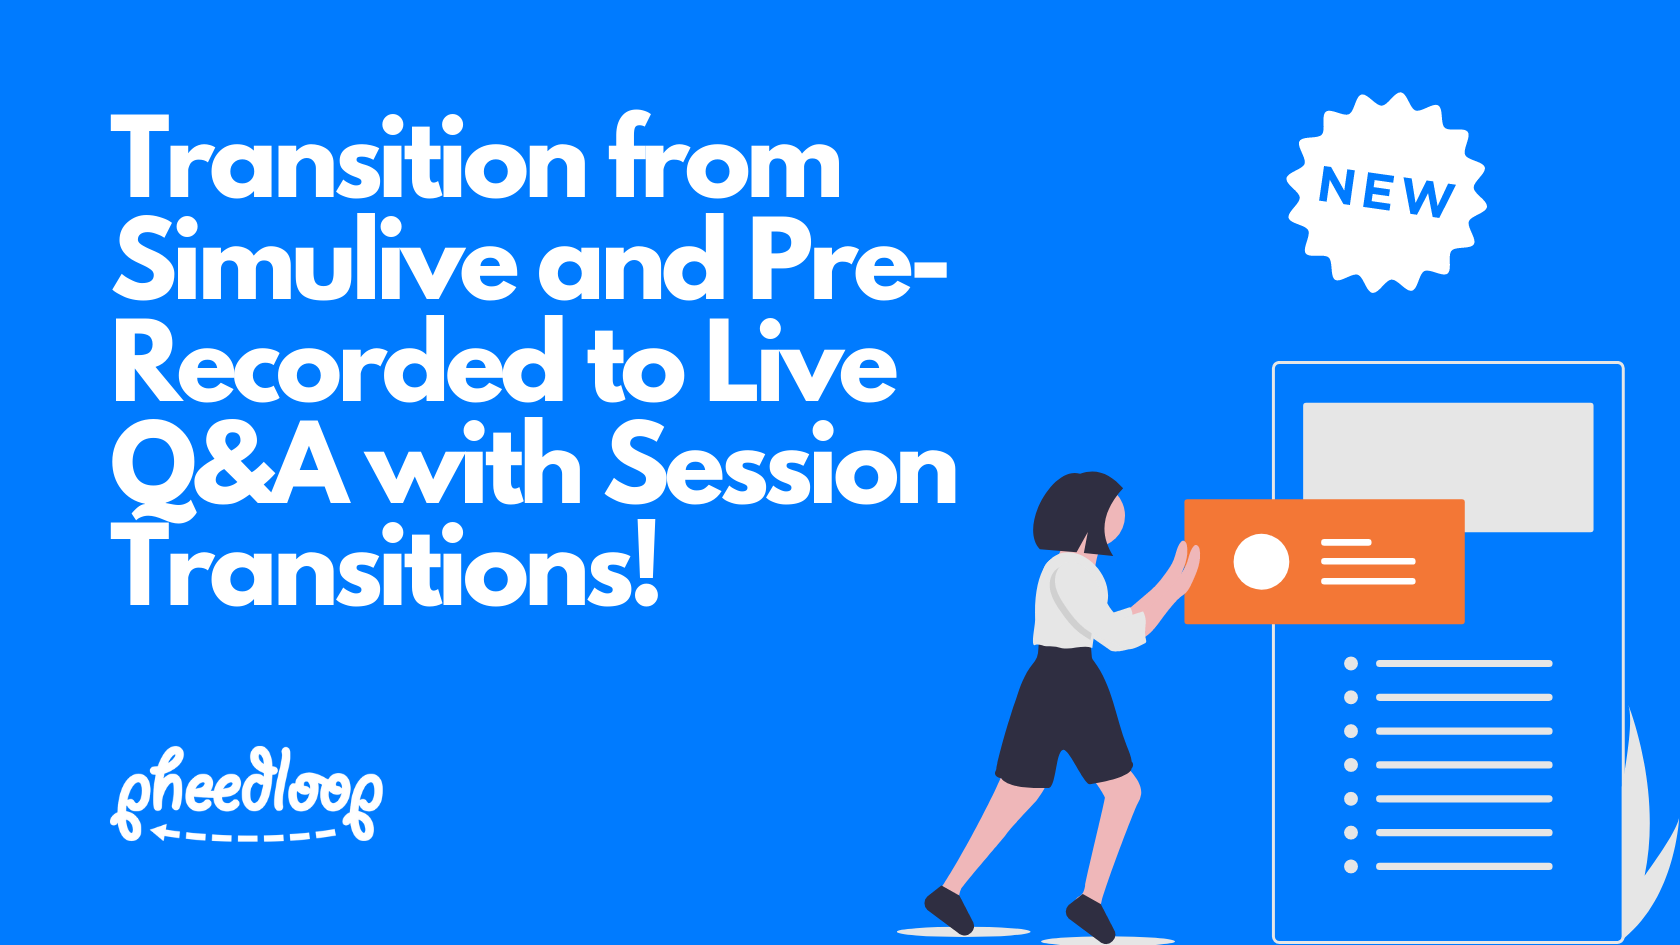 Transition from Simulive and Pre-Recorded to Live Q&A and More Seamlessly with Session Transitions!